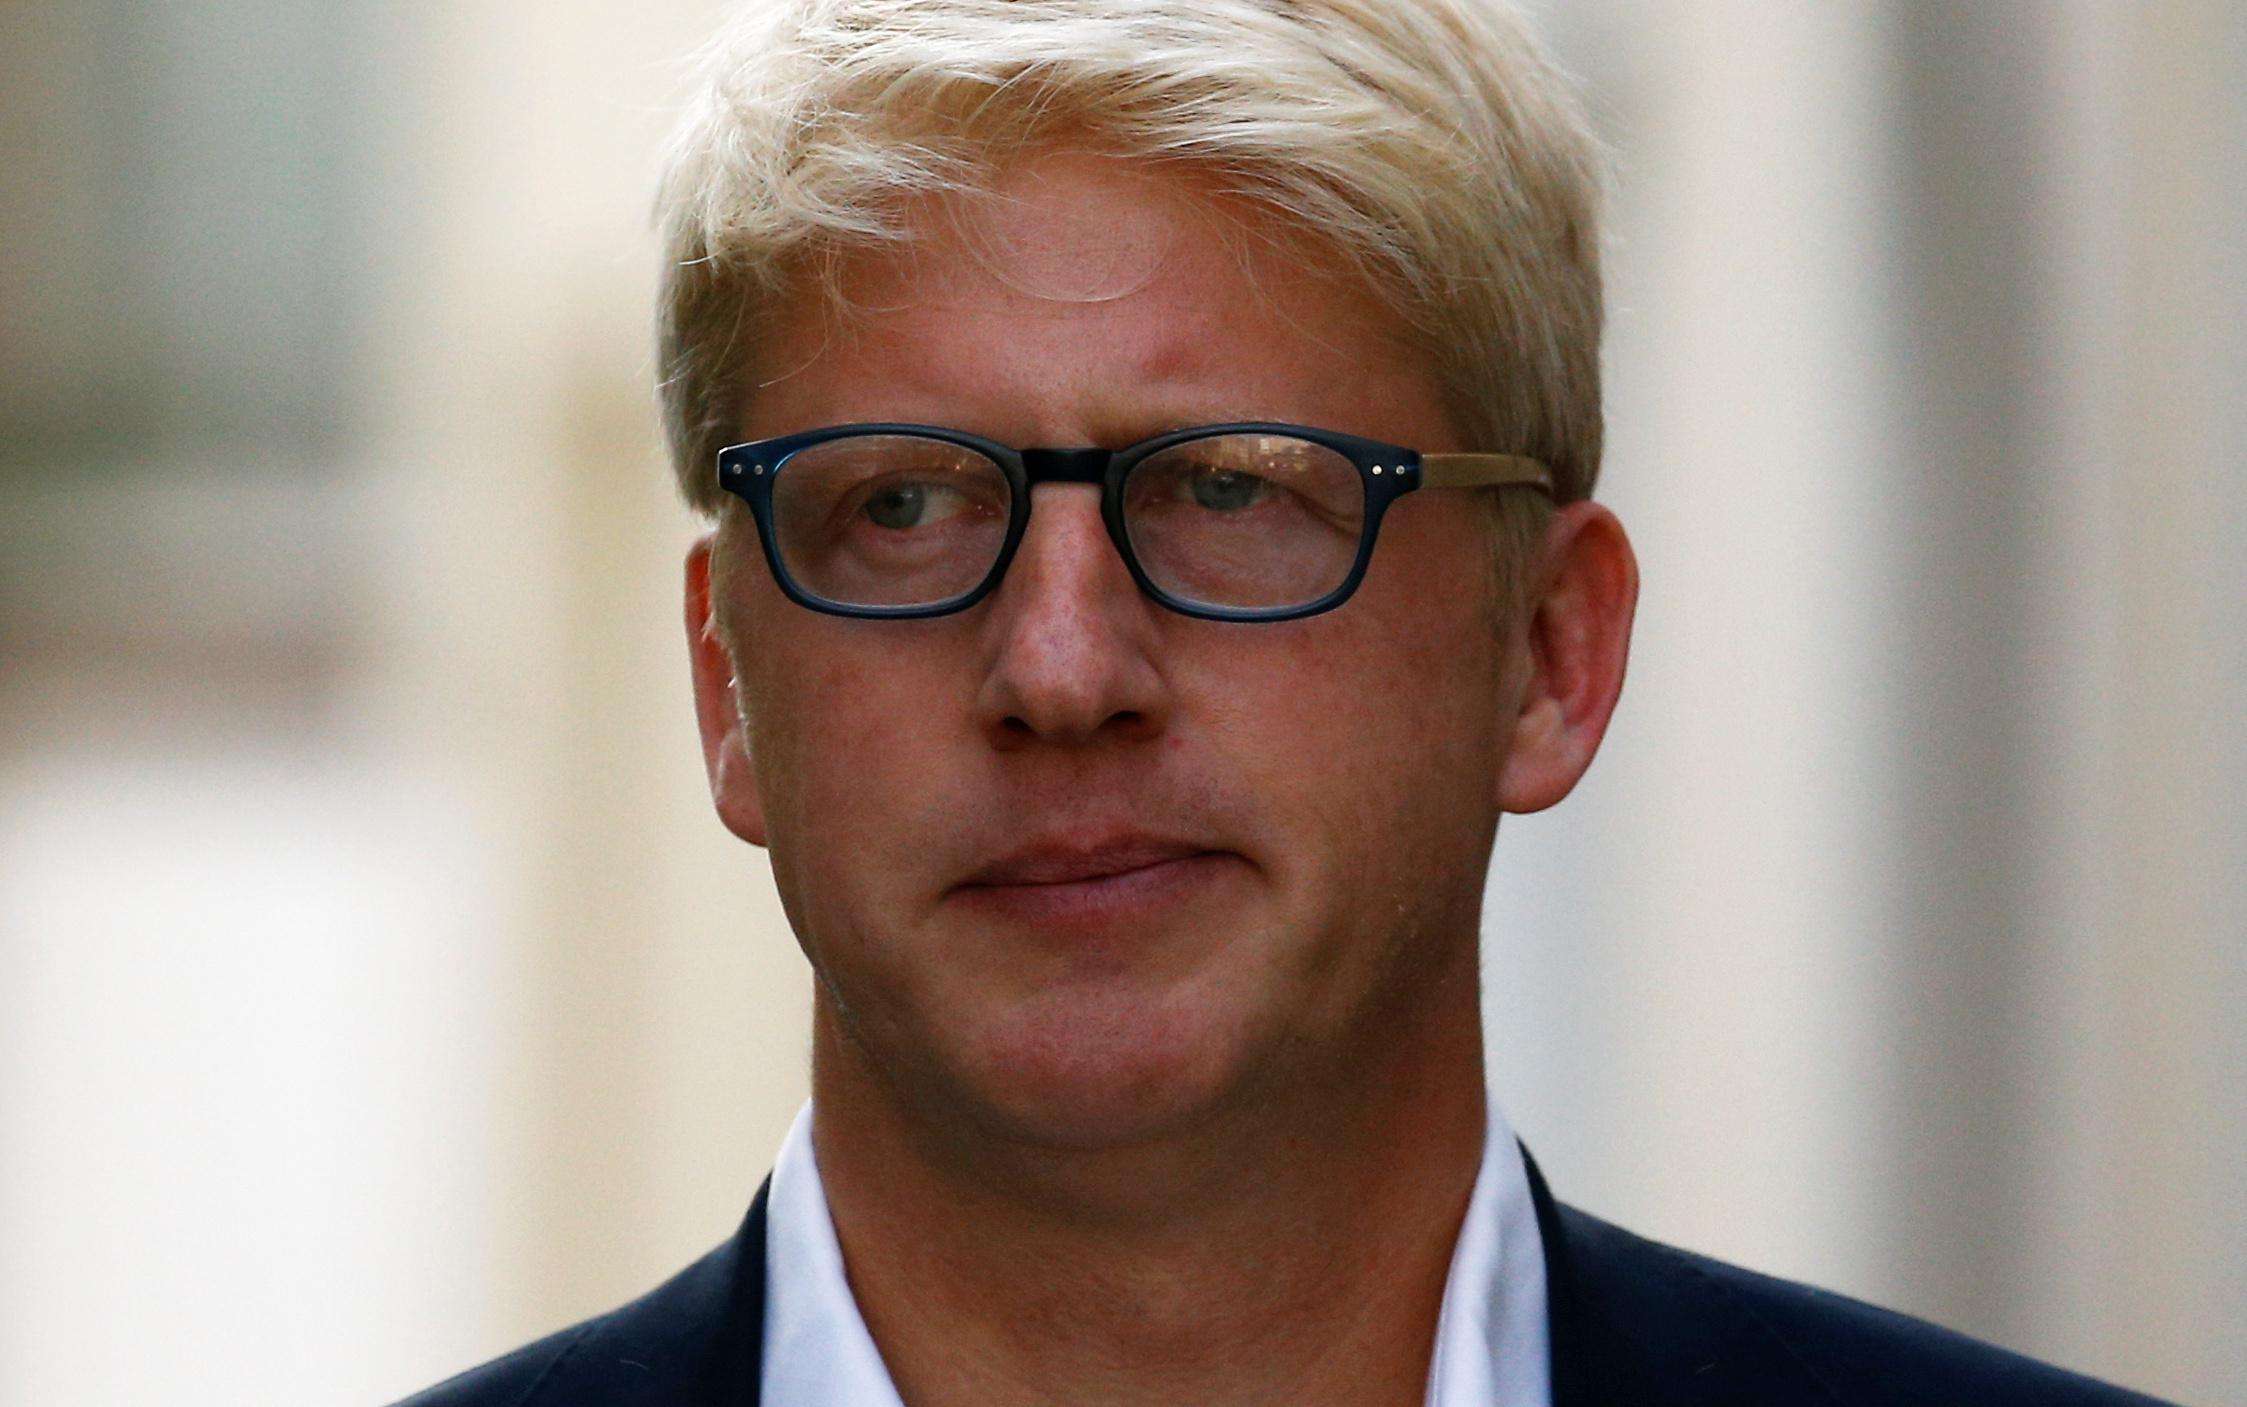 PM Johnson's own brother quits on eve of Brexit election campaign